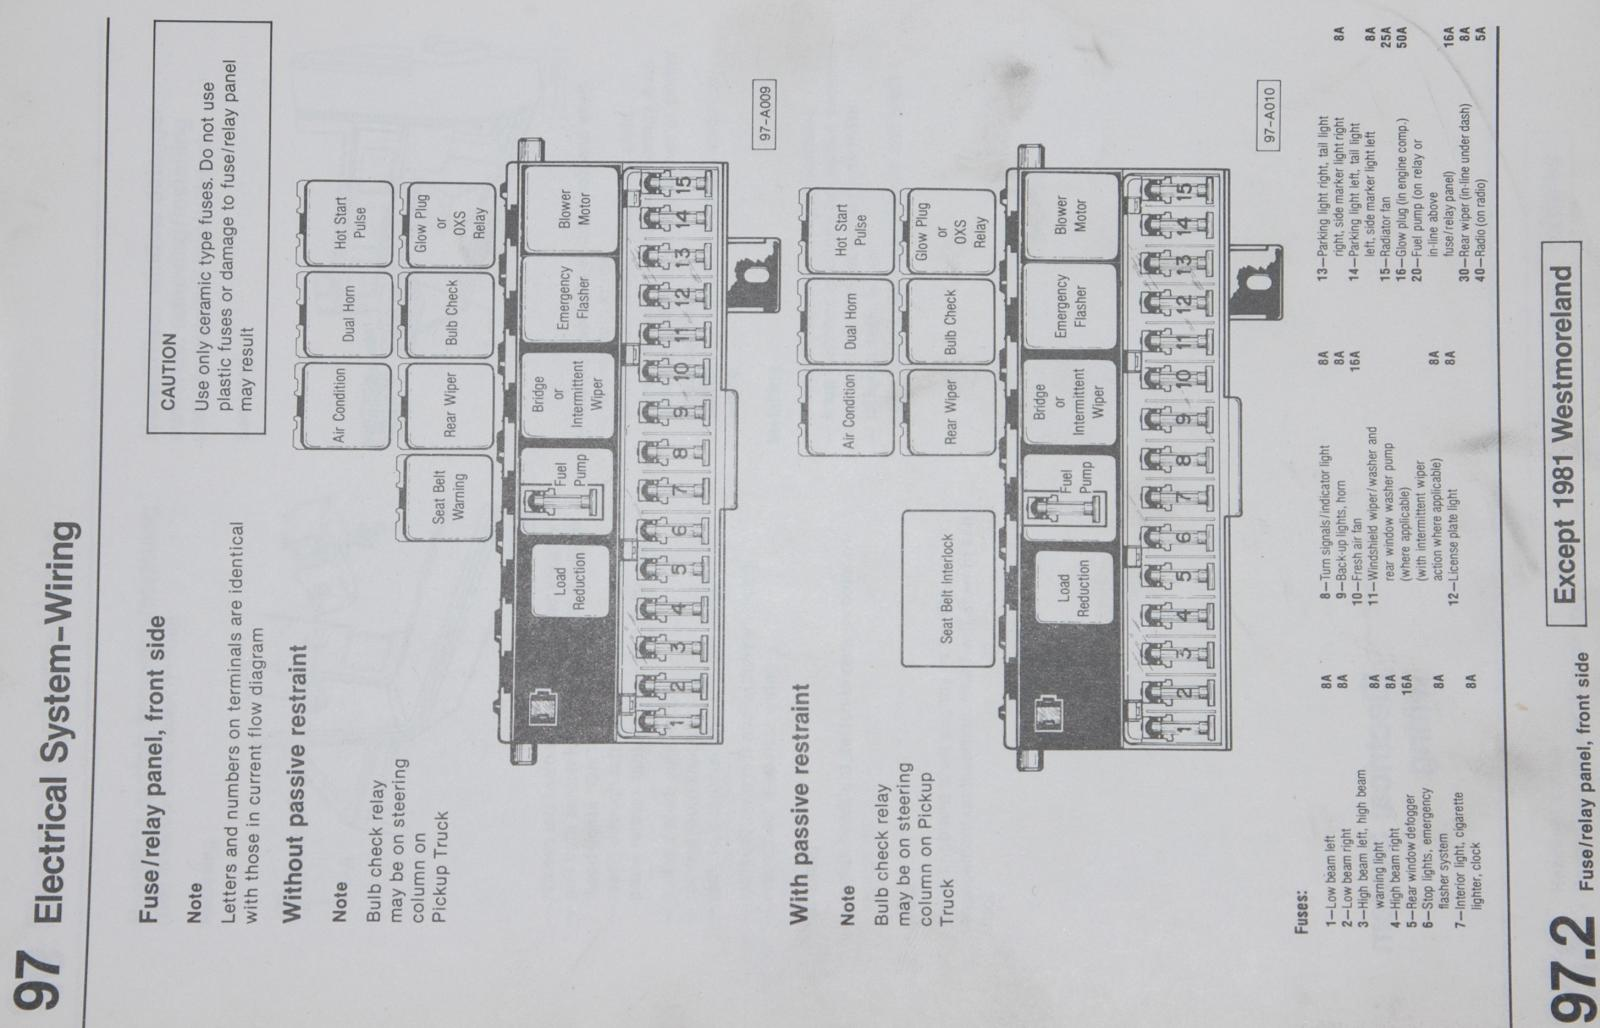 2001 ford explorer speaker diagram html